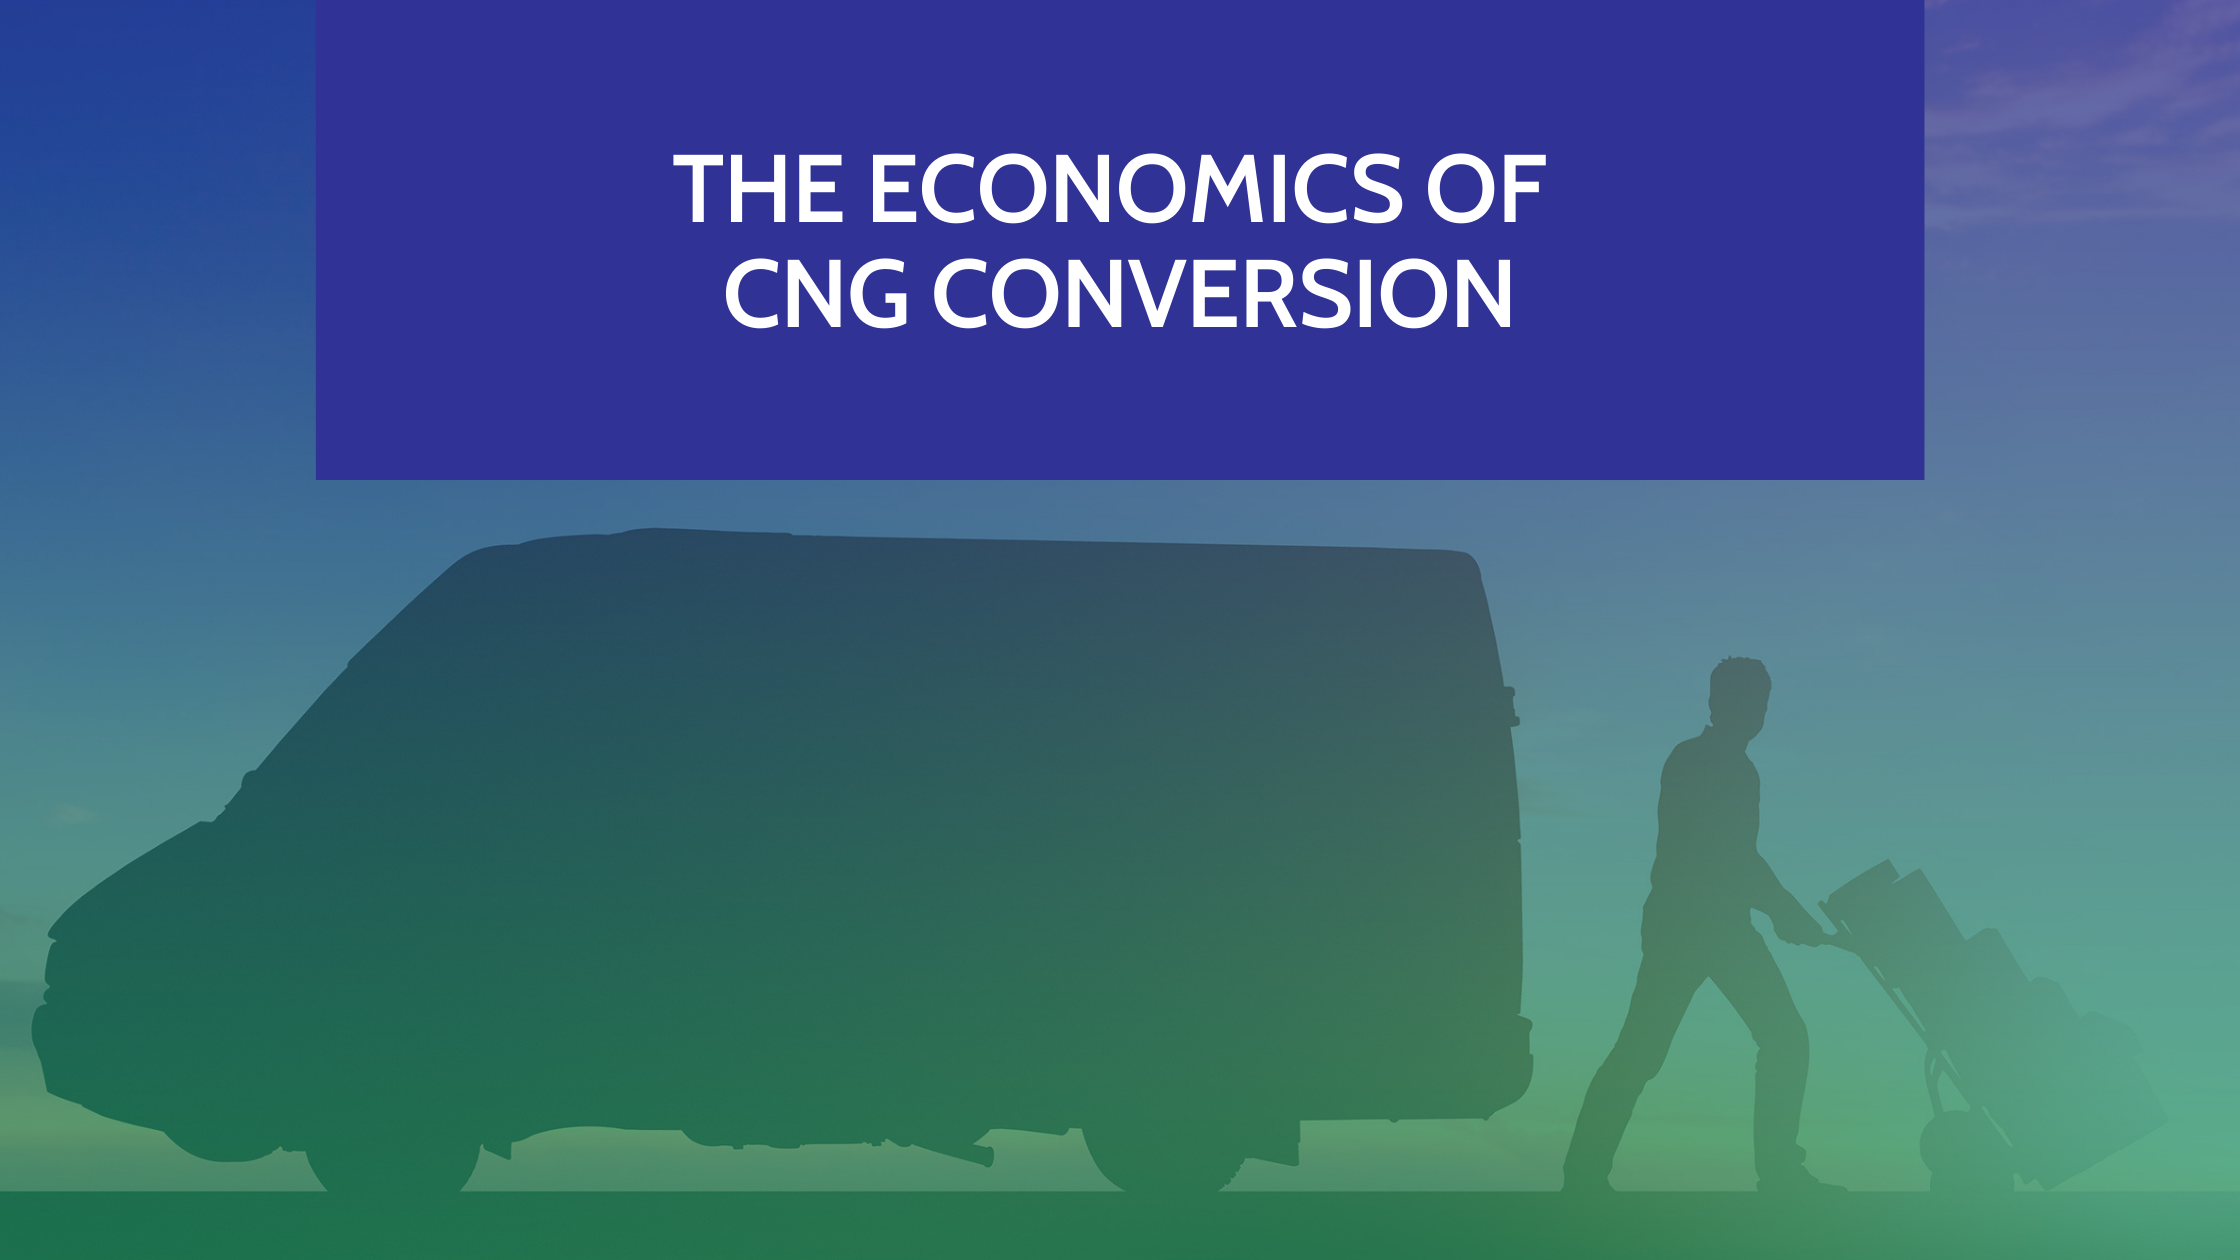 The Economics of CNG Conversion